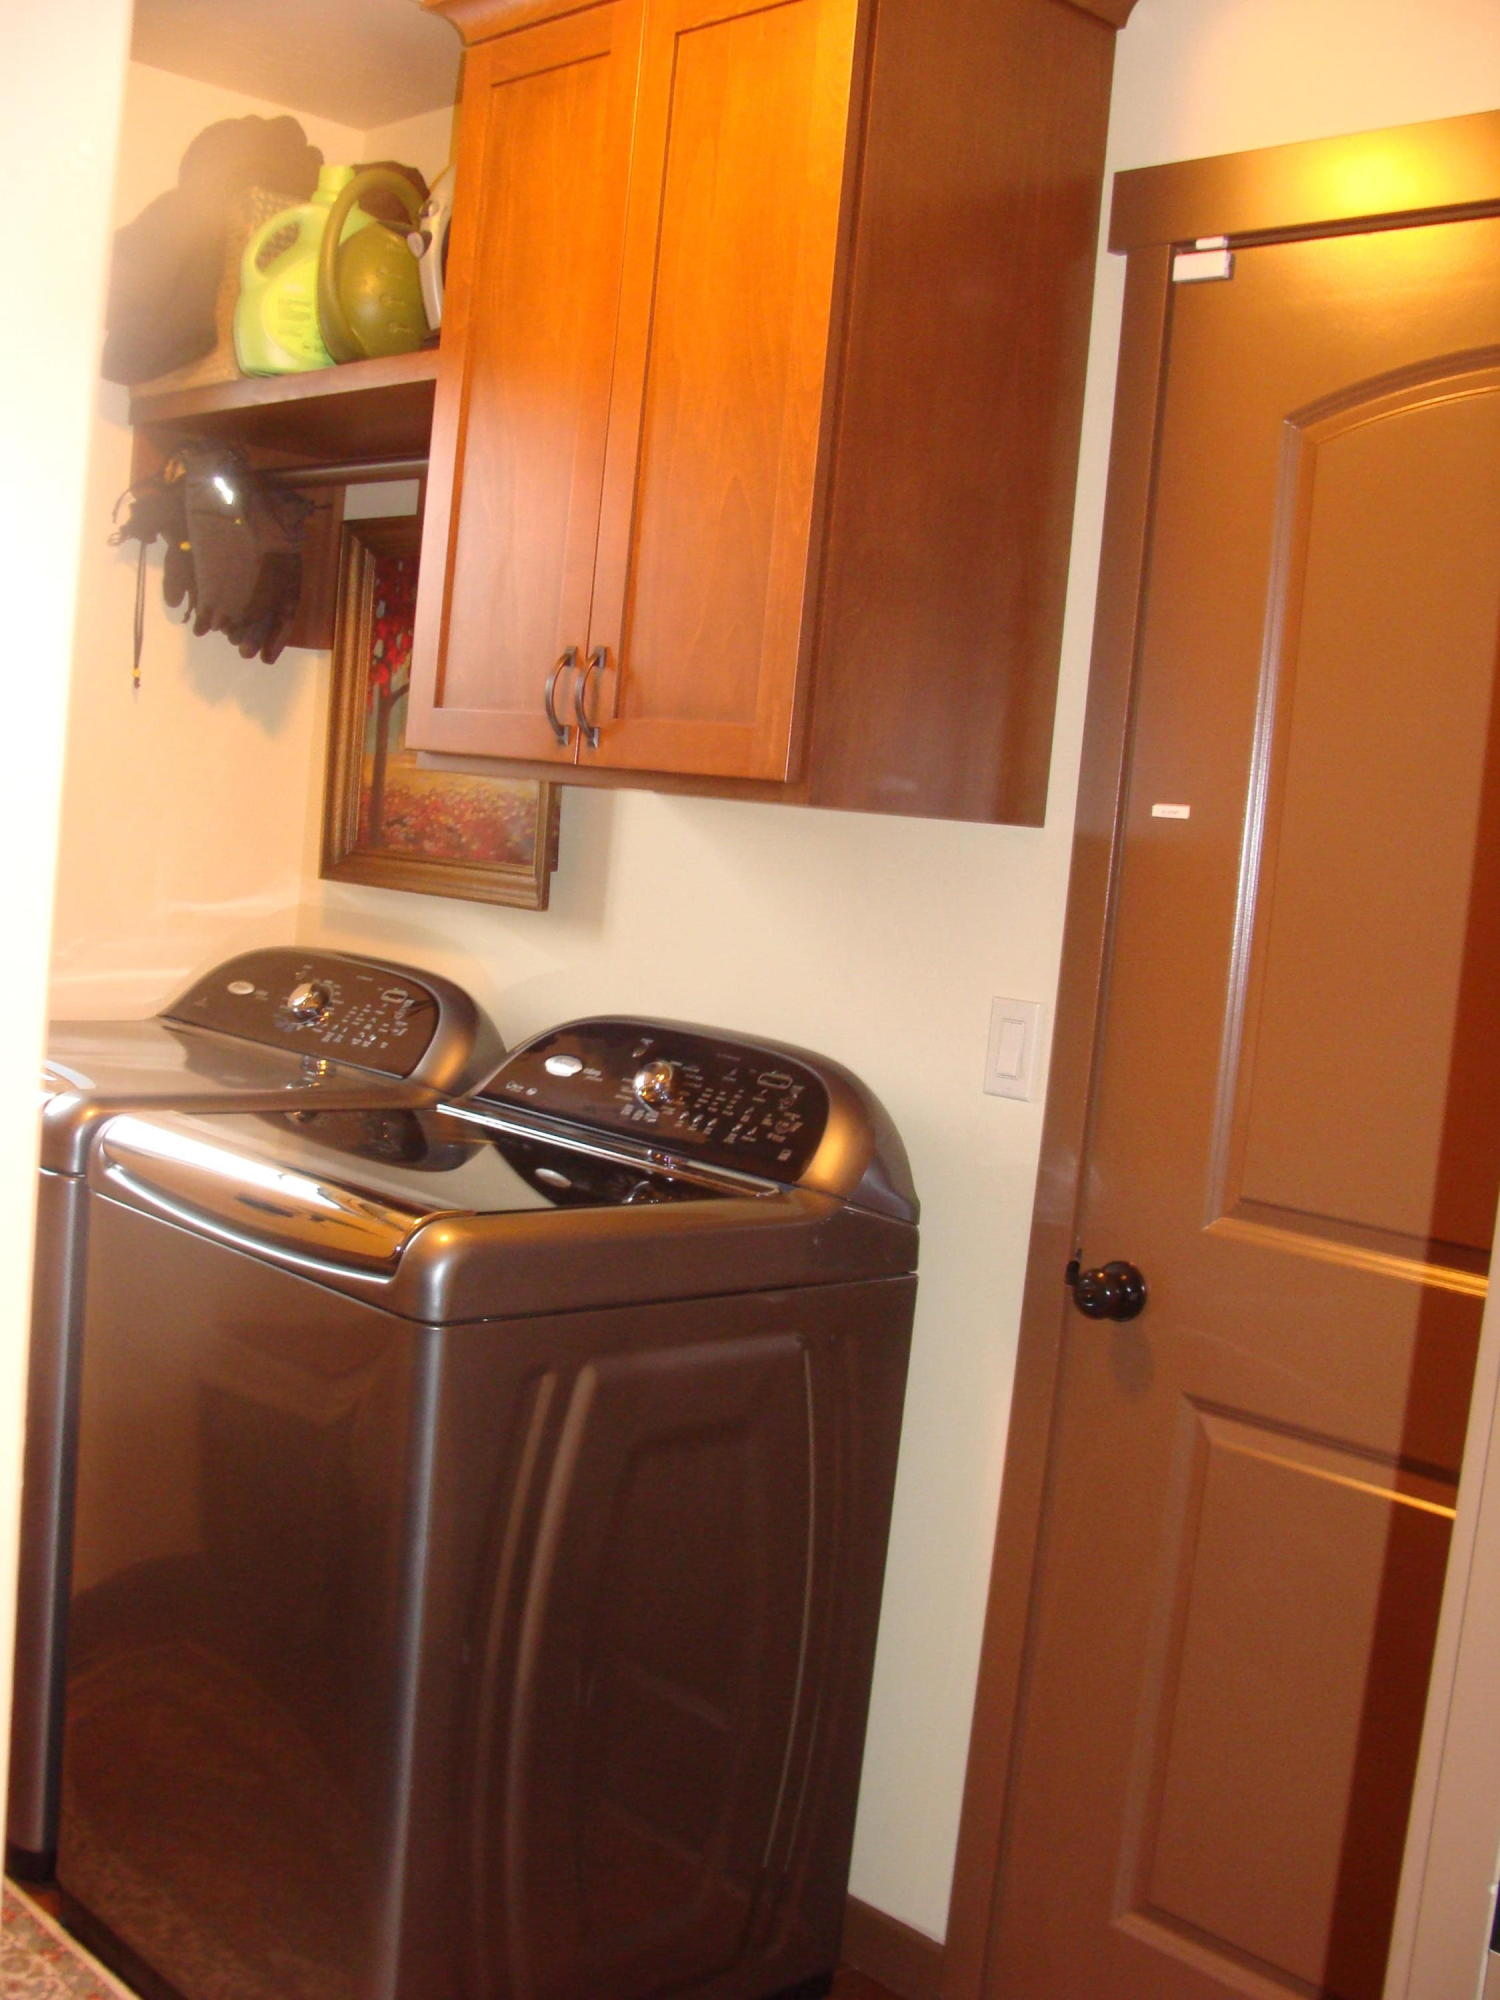 laundry room off of garage